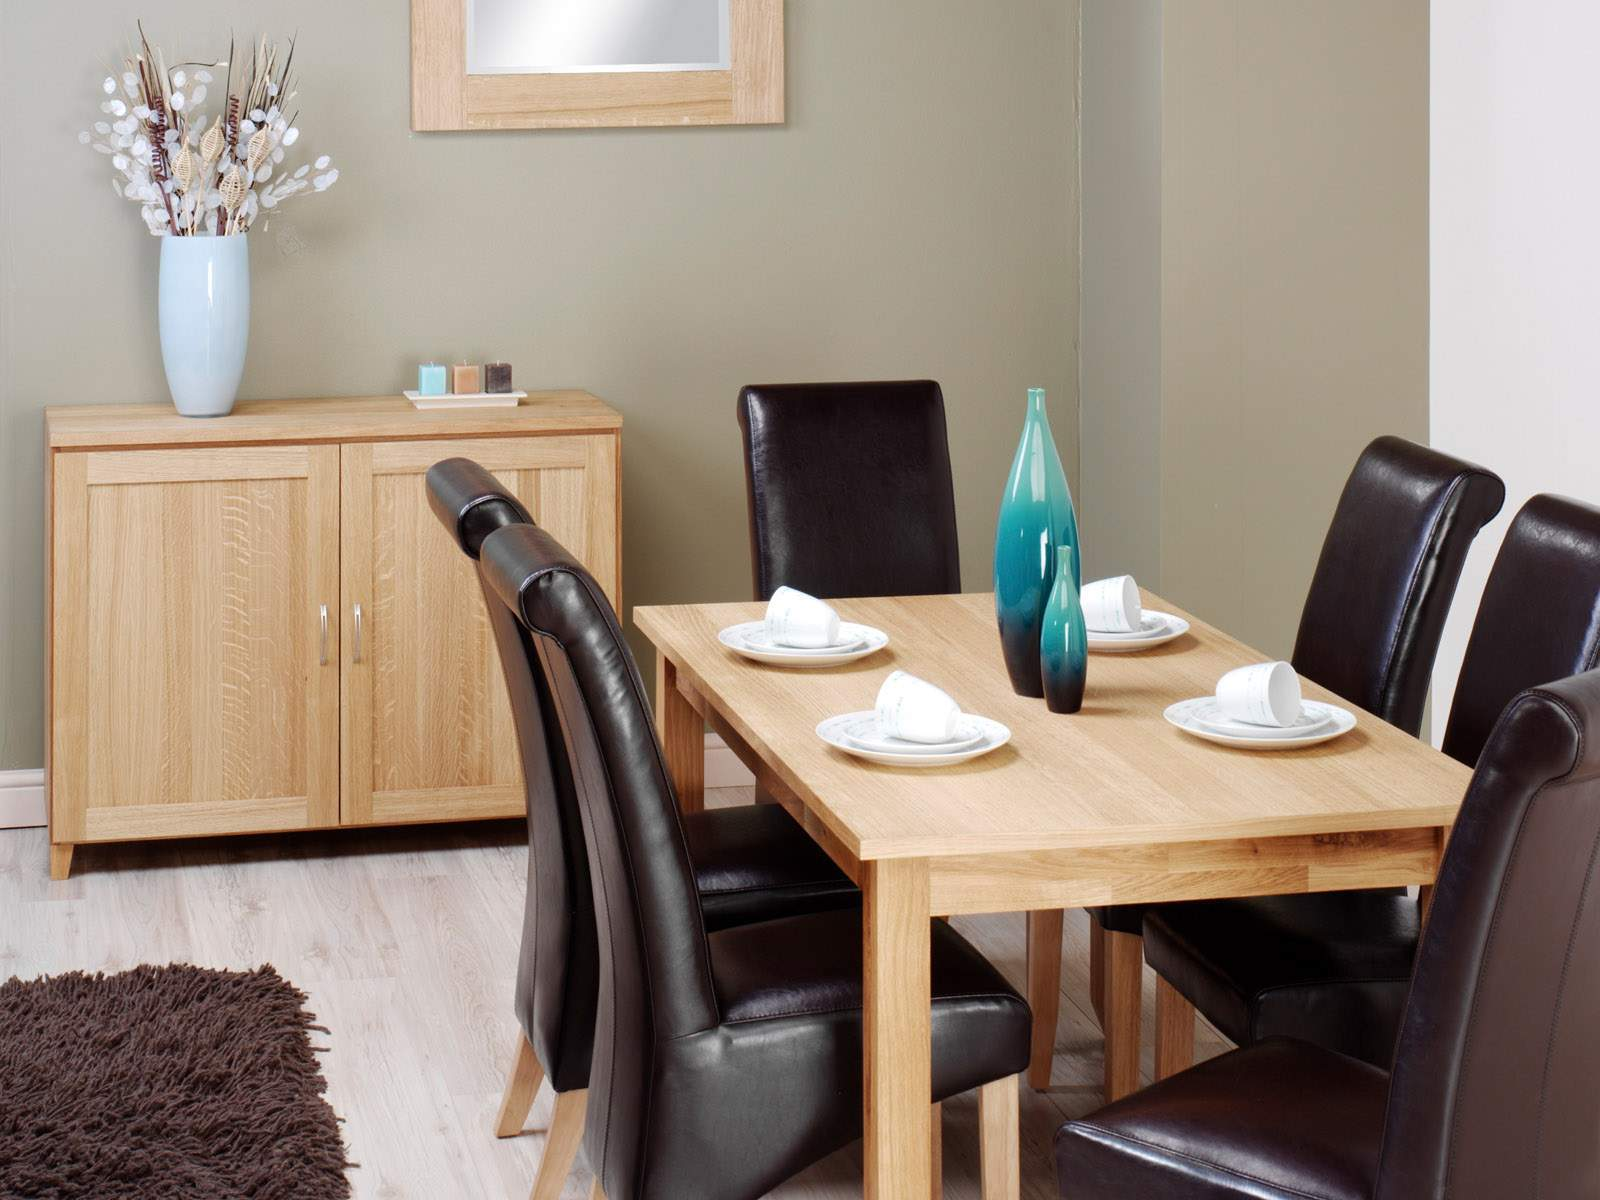 Modern Leather Dining Chairs to Complement the Interior. Casual atmosphere emphasized by classe black topped chairs